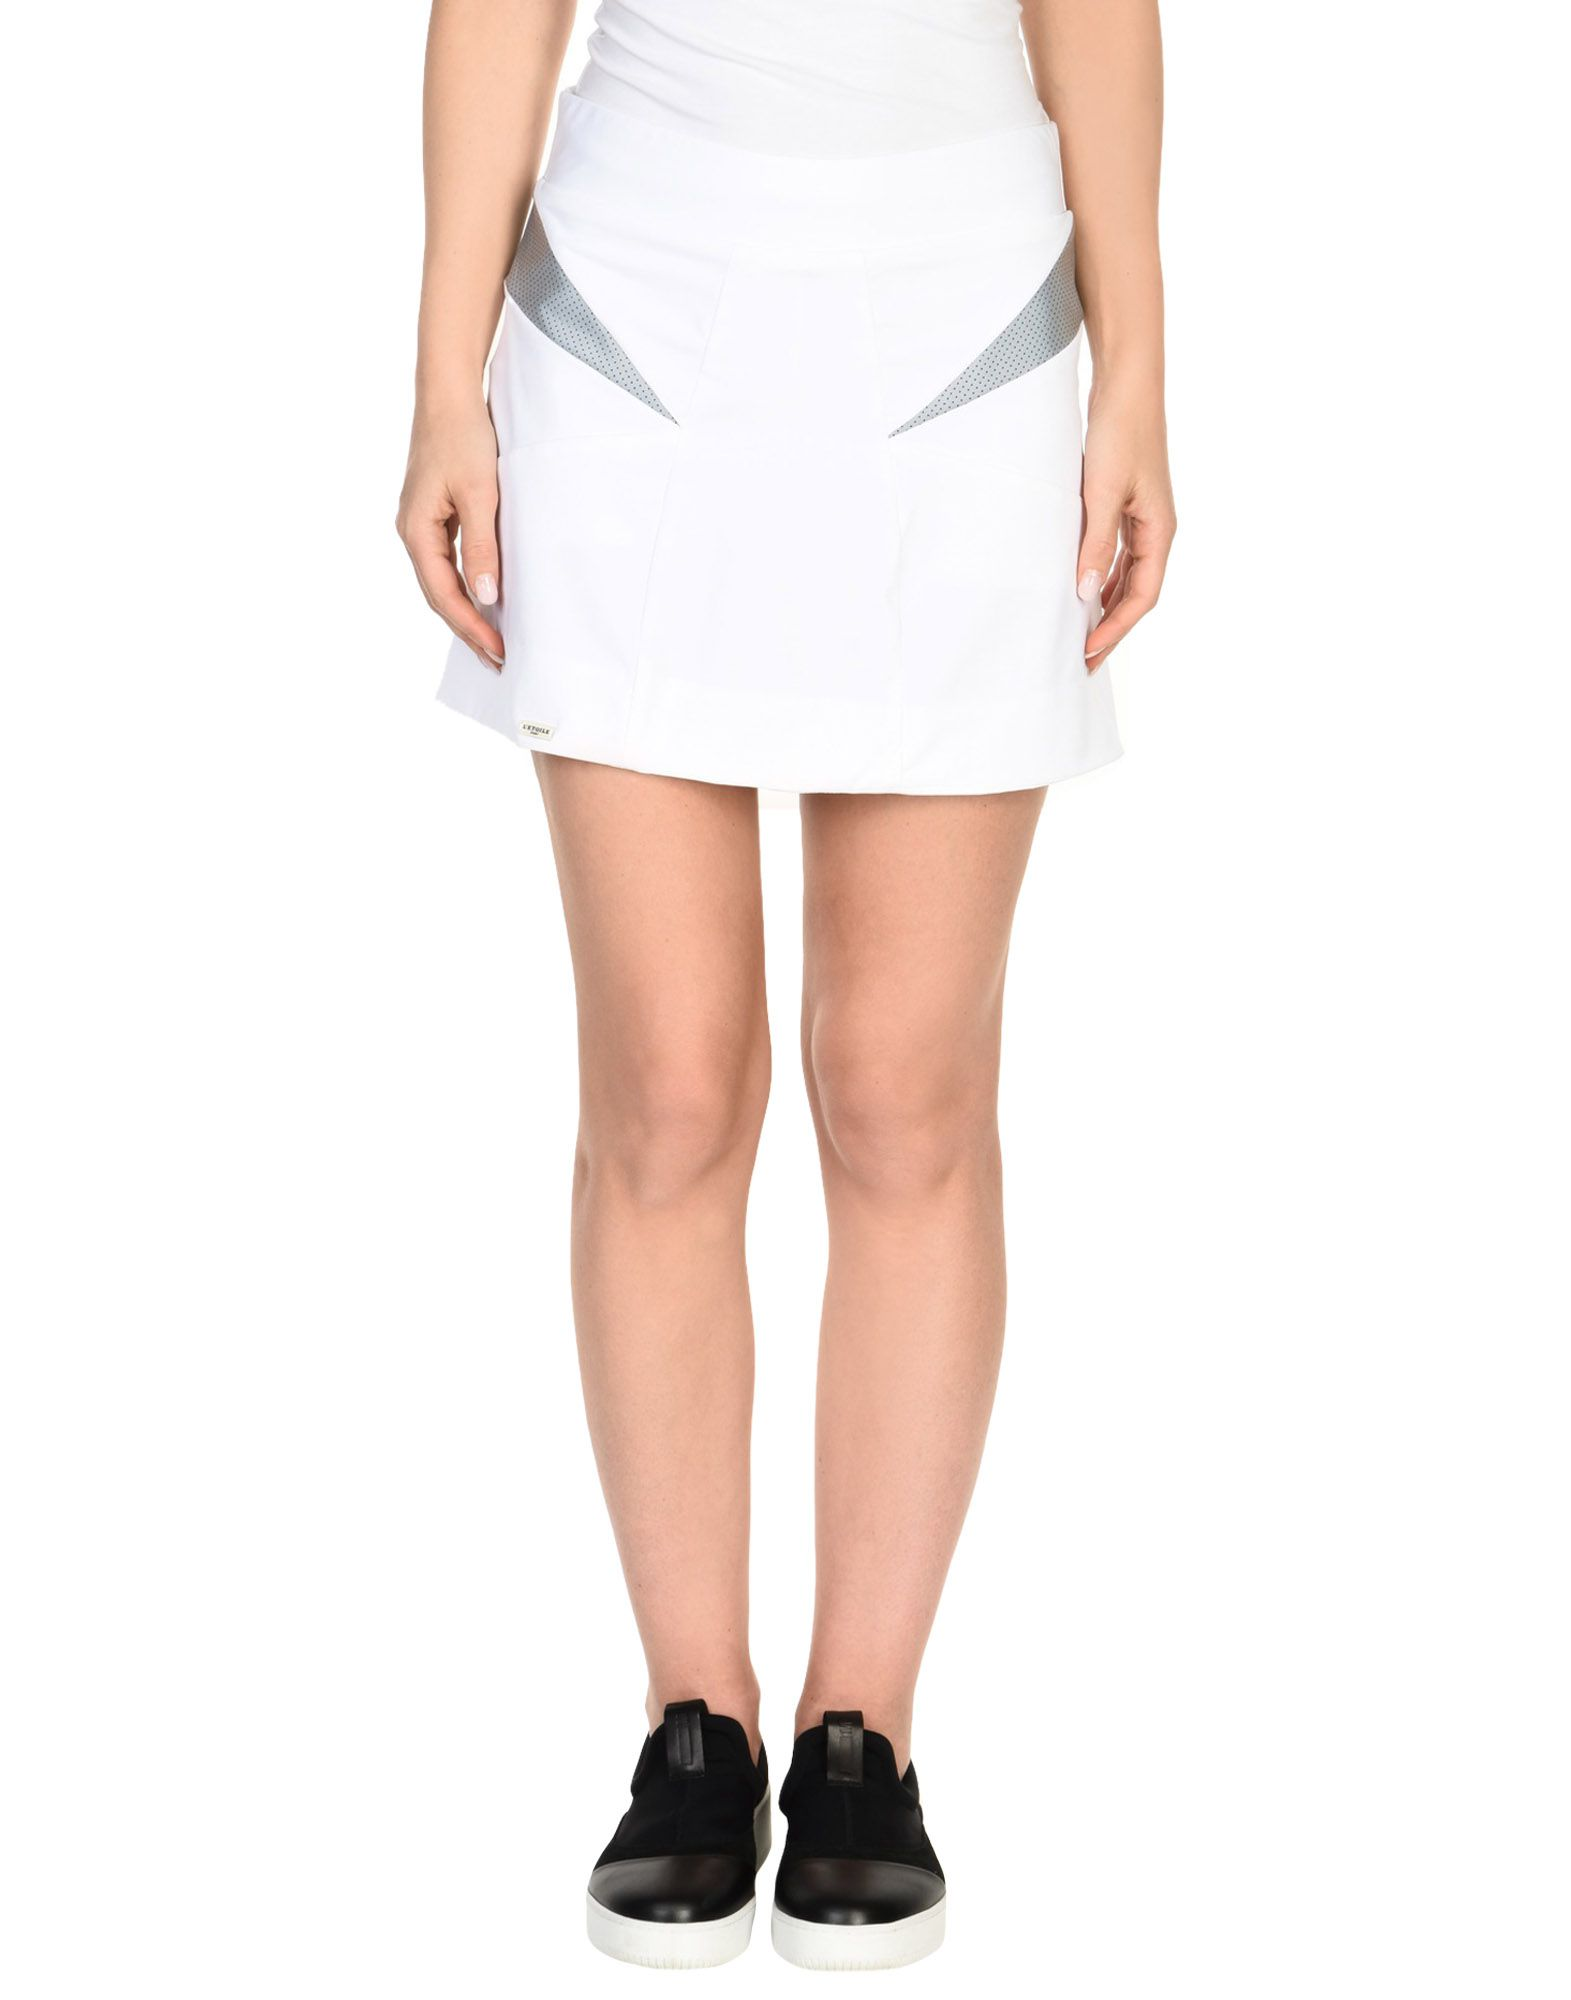 L'ETOILE SPORT Mini Skirt in White